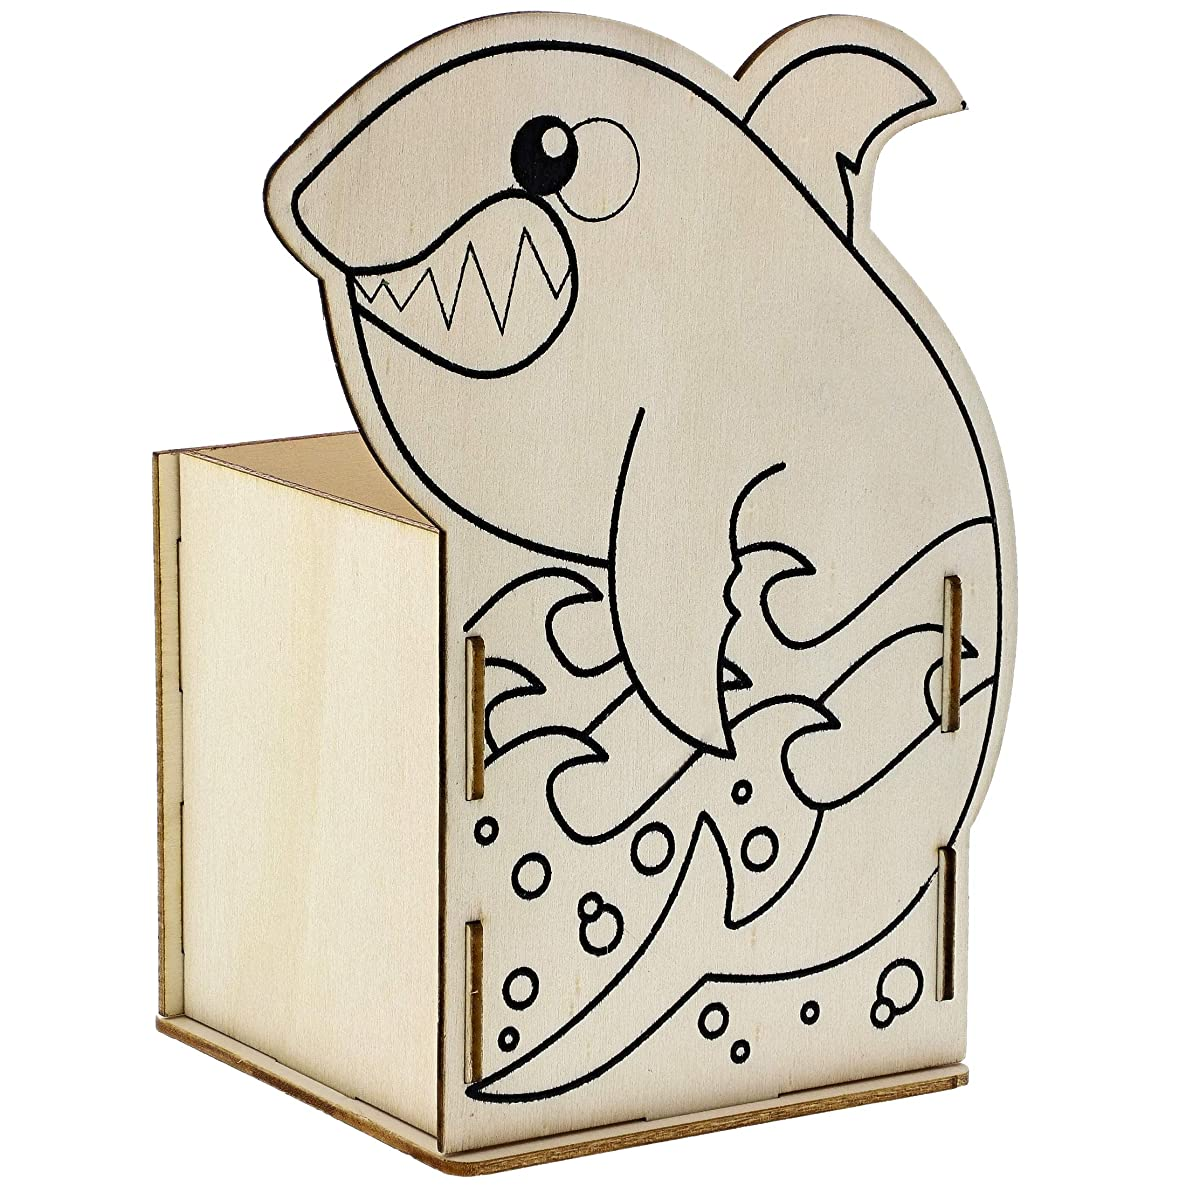 Bright Creations 8-Pack DIY Unfinished Wood Shark Box Kit for Painting and Crafts, 3.5 x 5 Inches